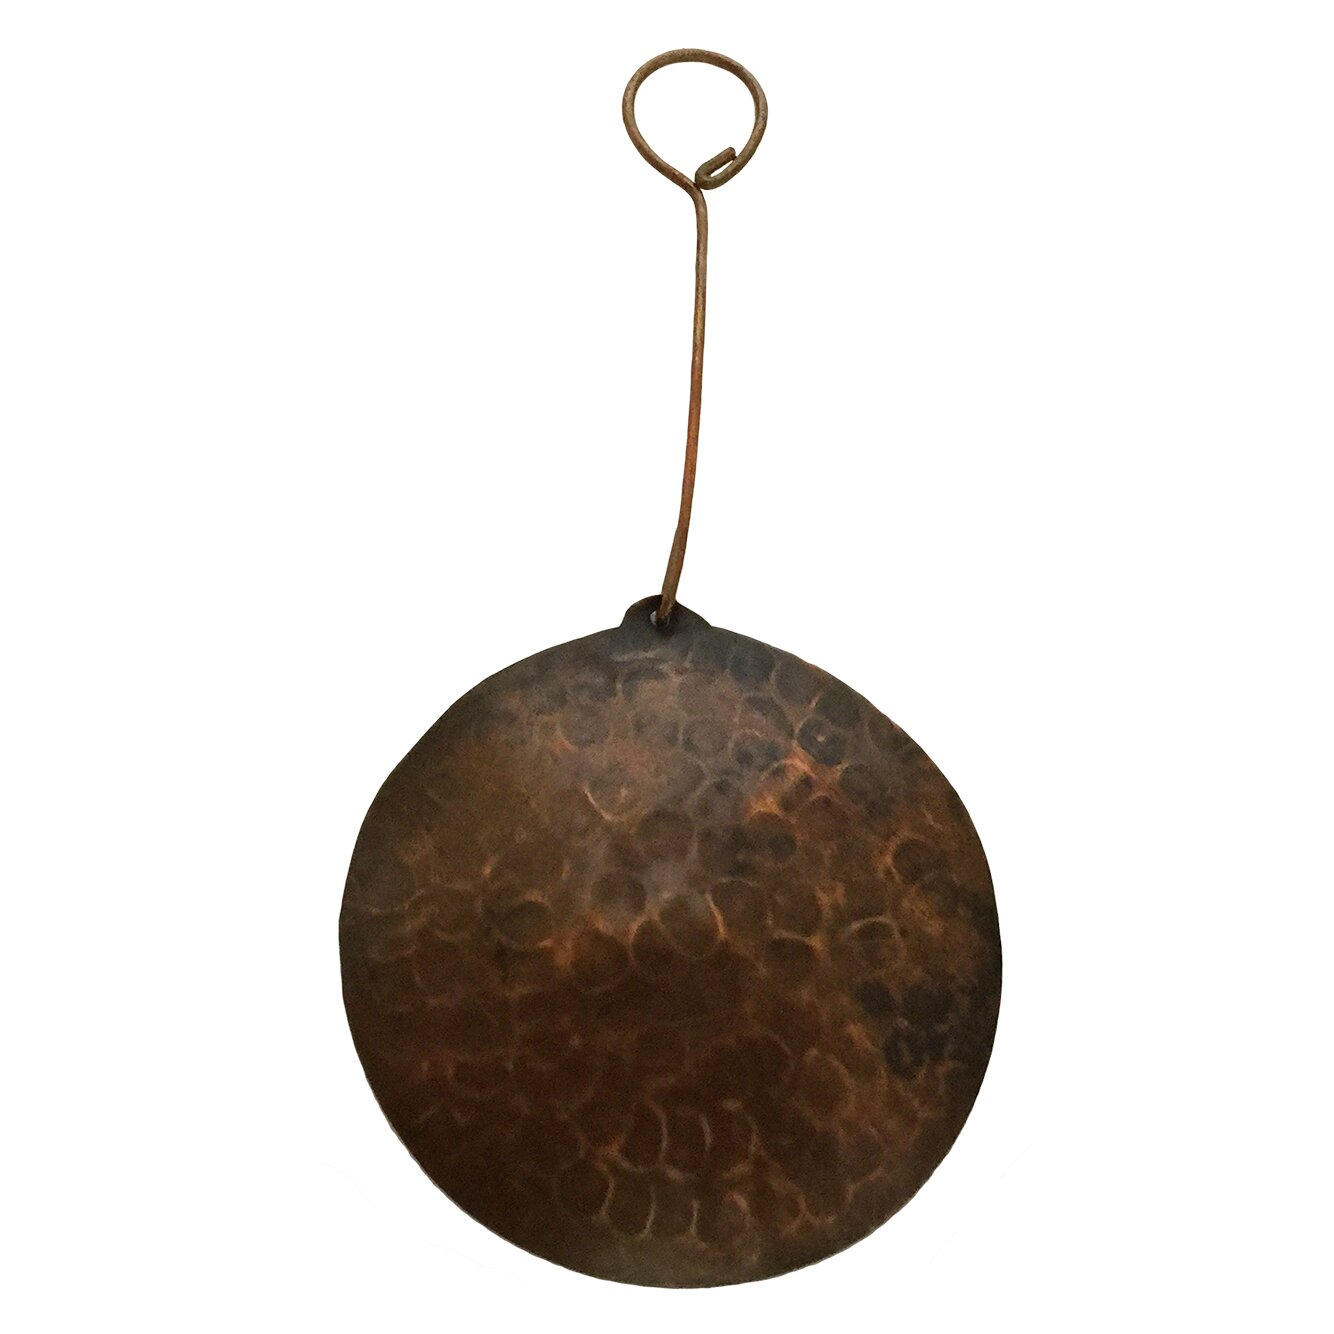 Premier copper products hand hammered round